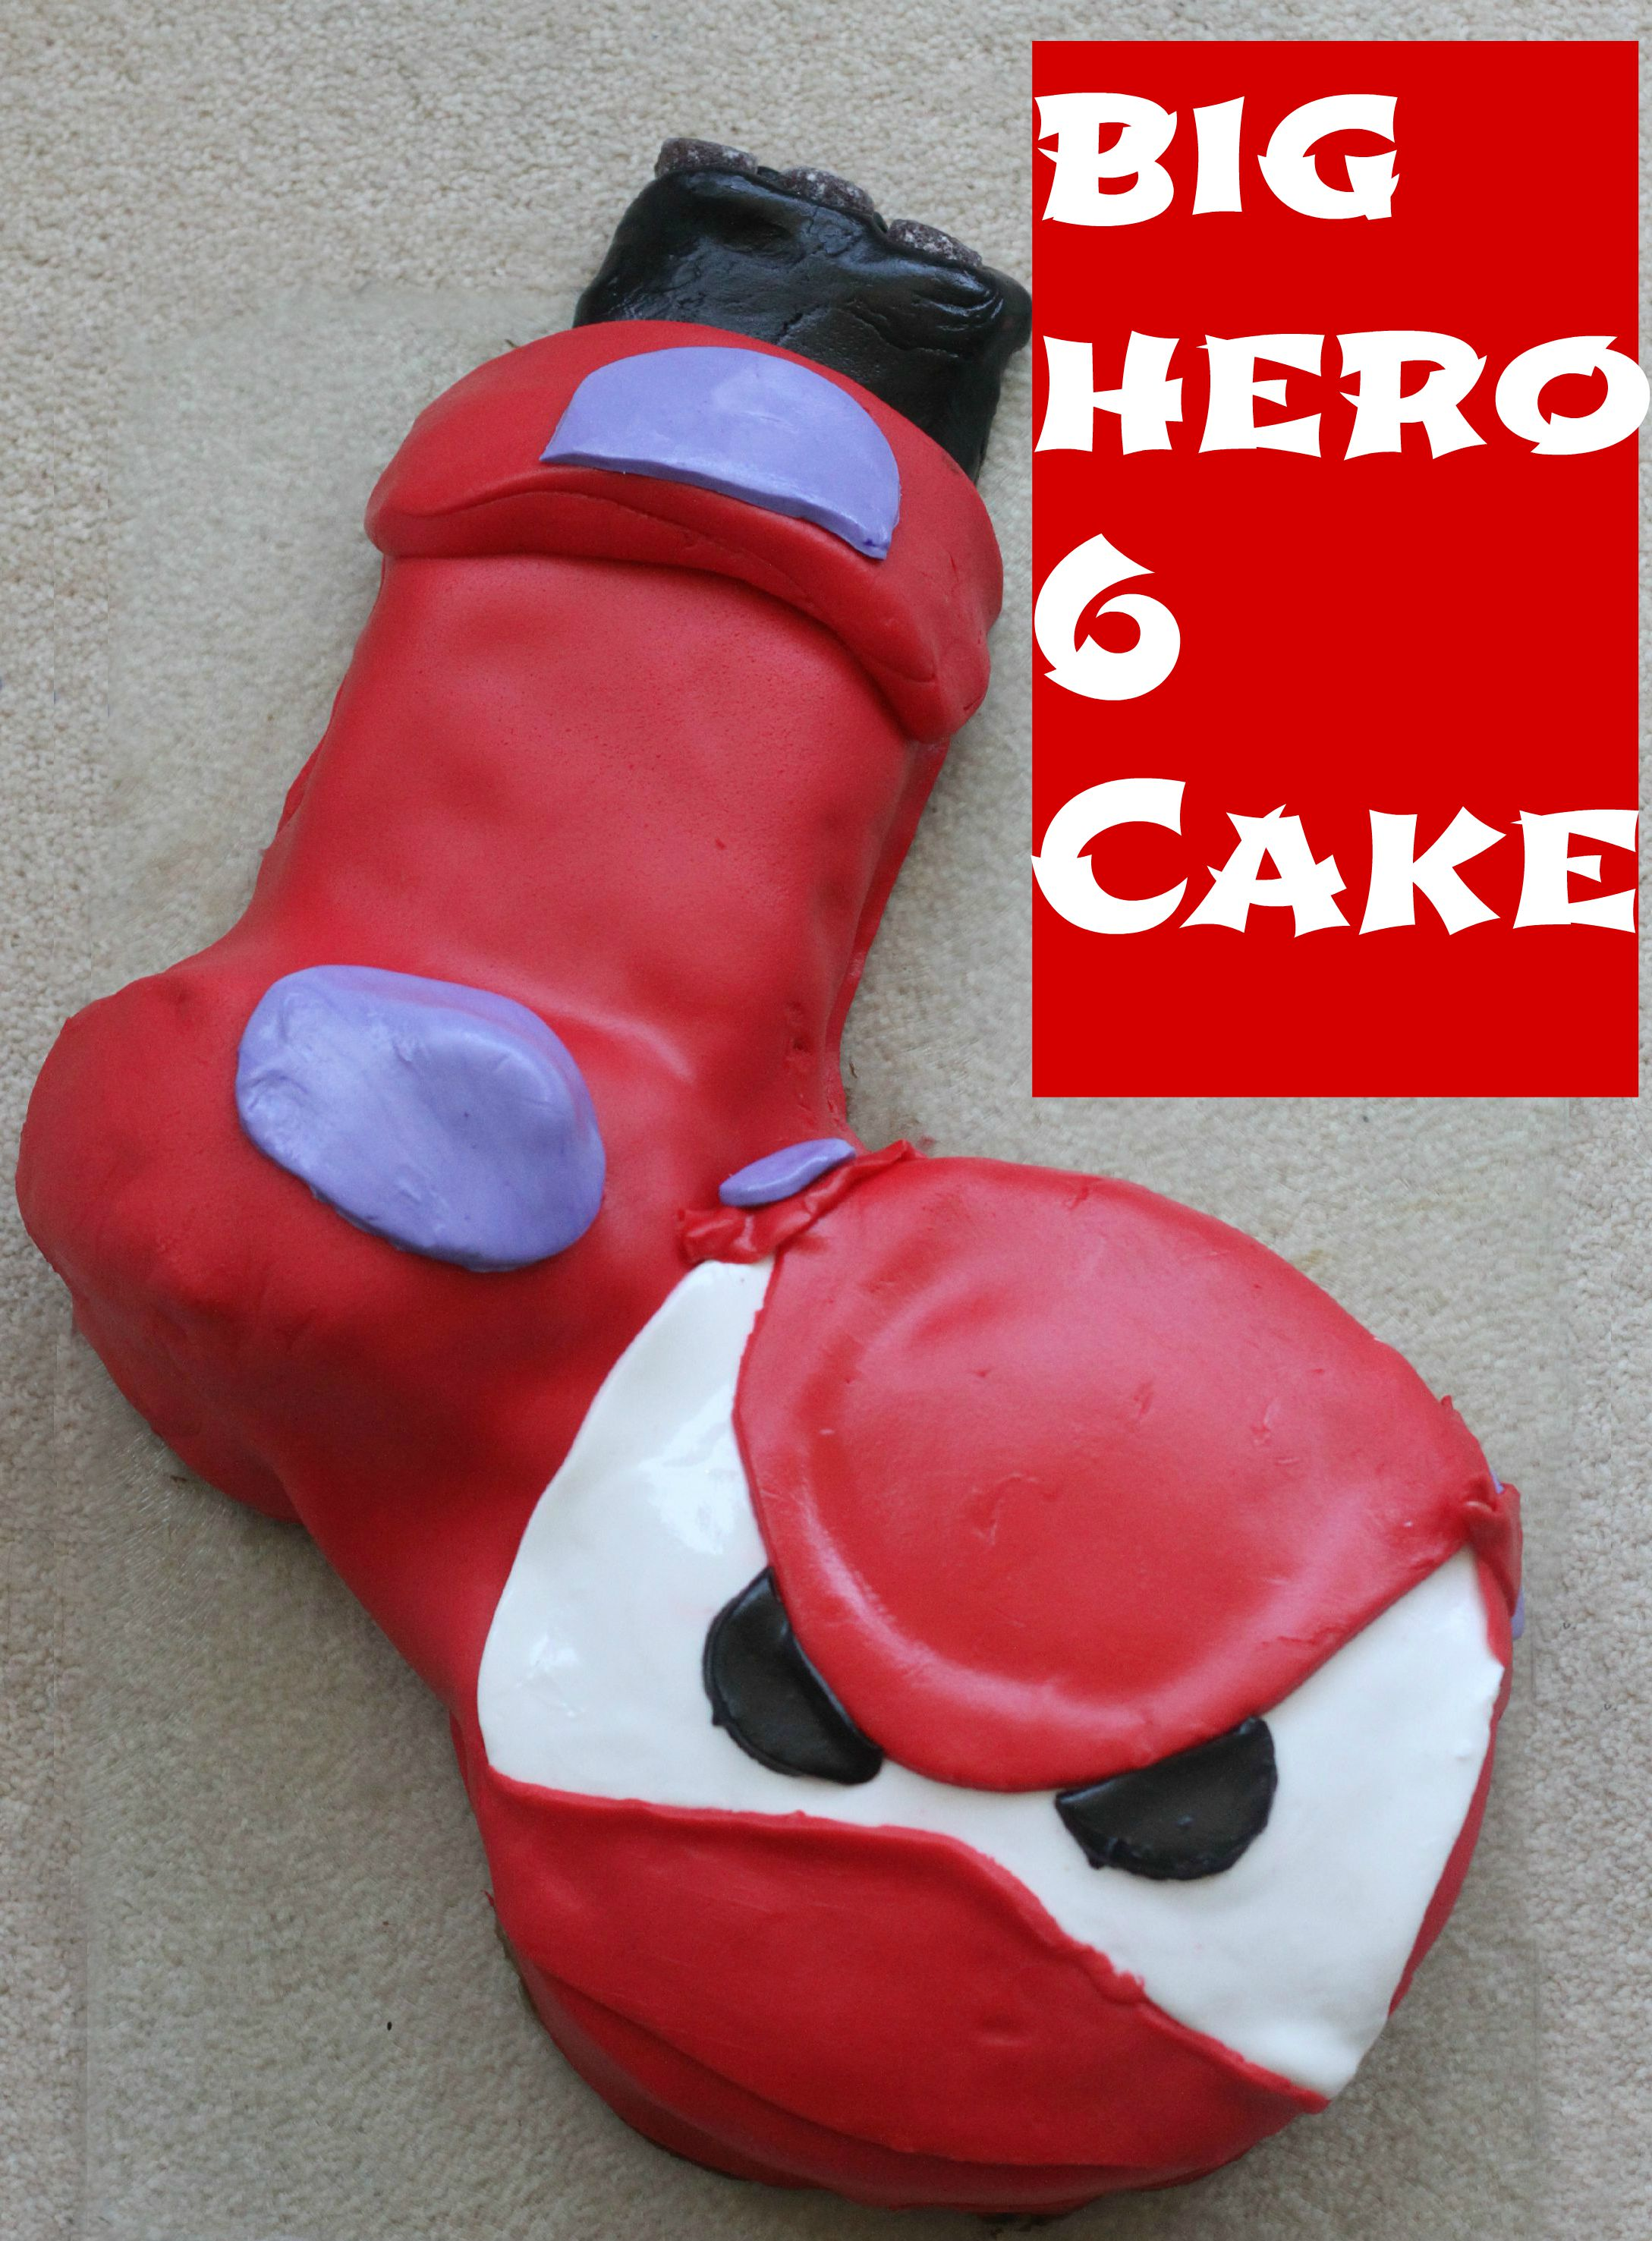 Big Hero 6 Cake Mummy Mishaps